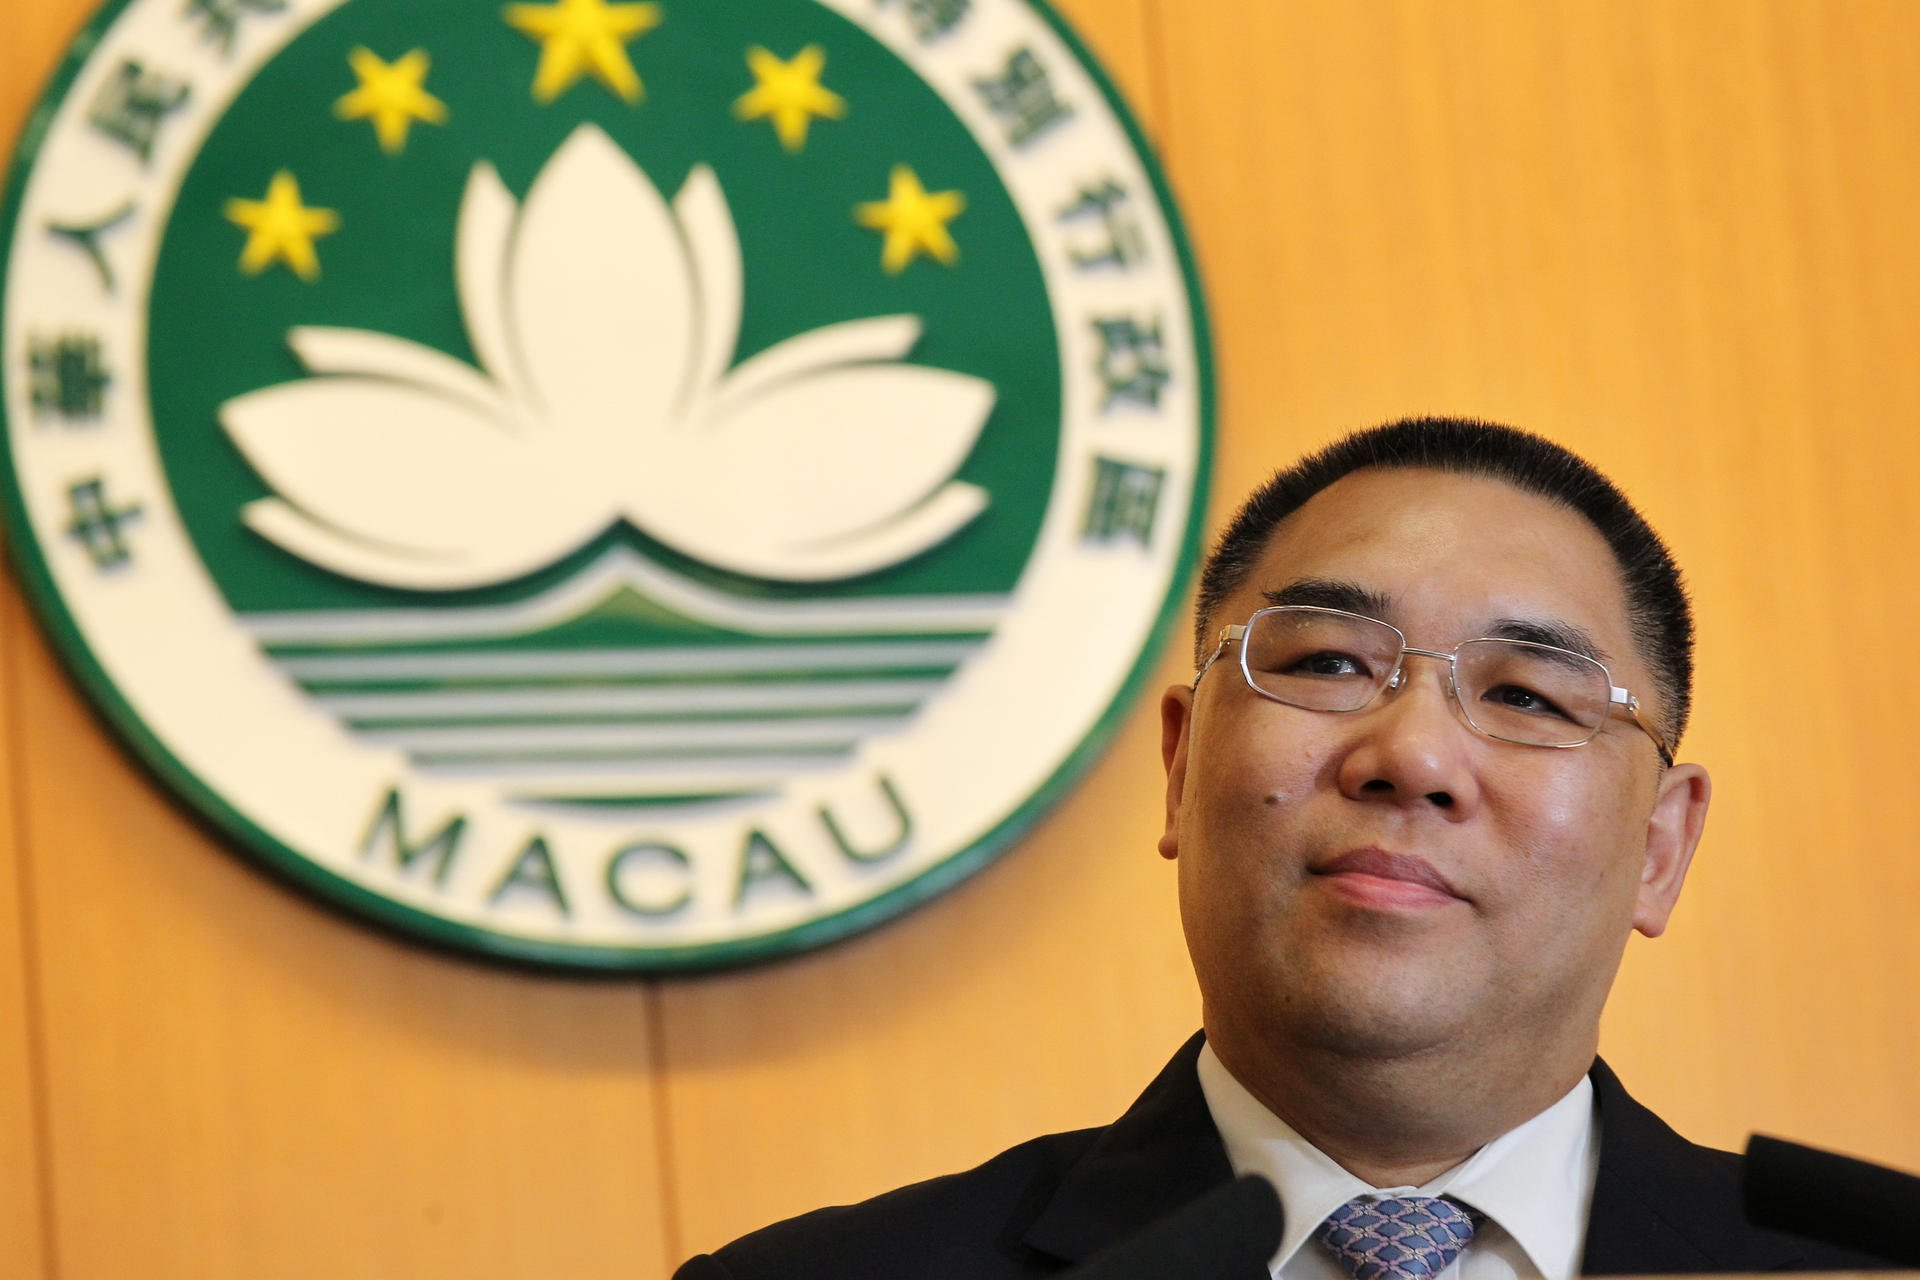 Macau gaming casino IMF review